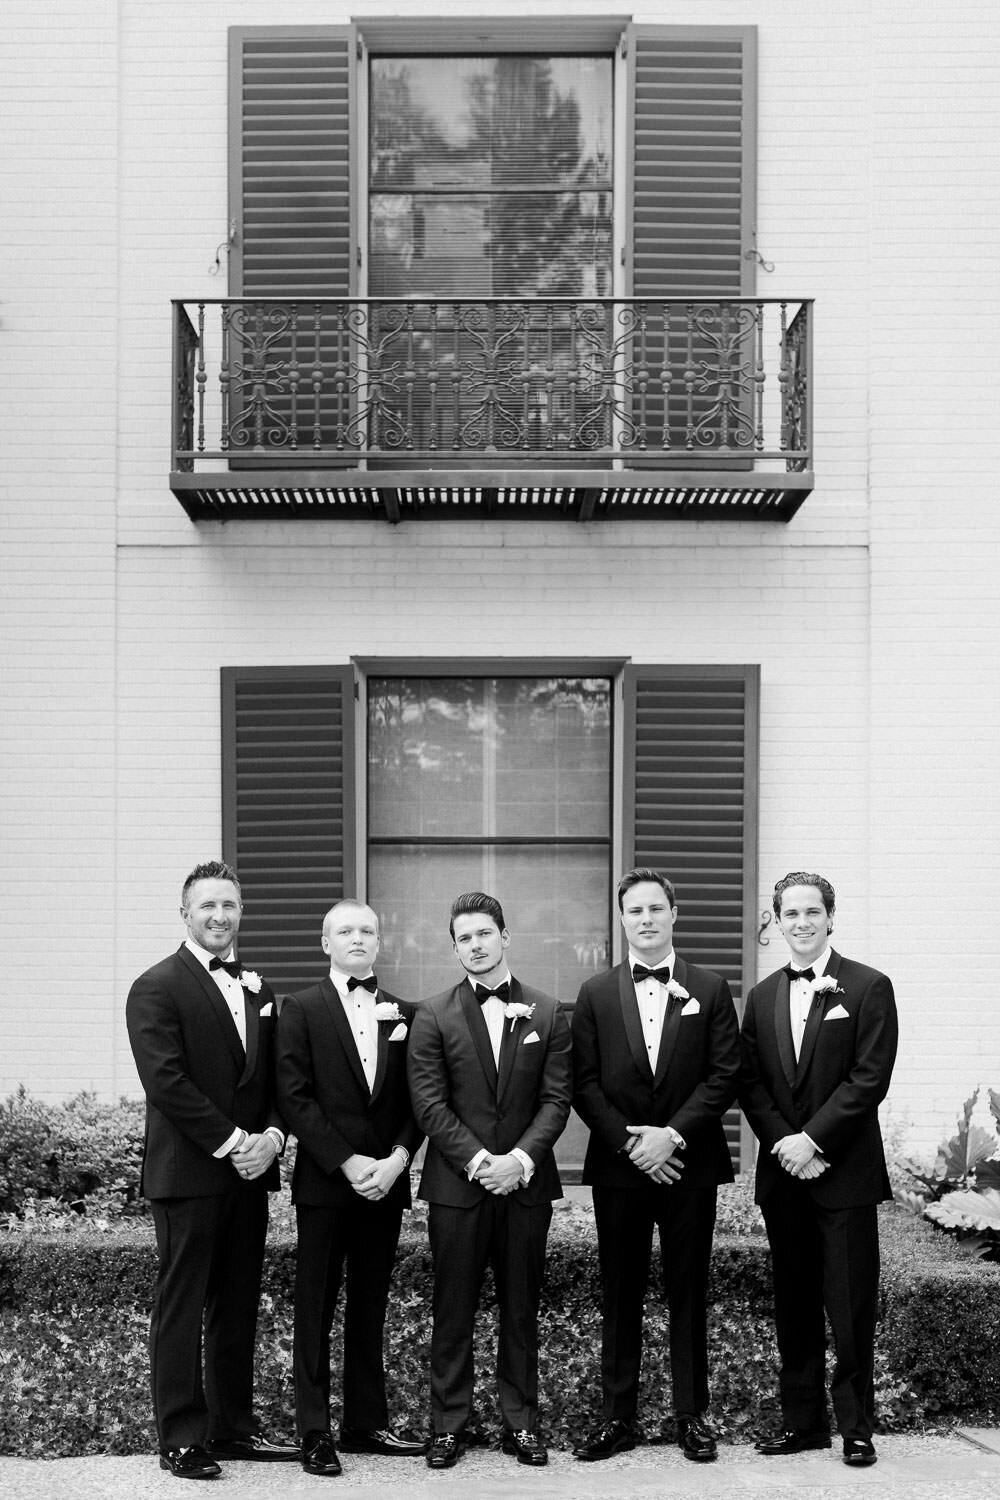 groom and four groomsmen in tuxedos standing in a row in front of white house